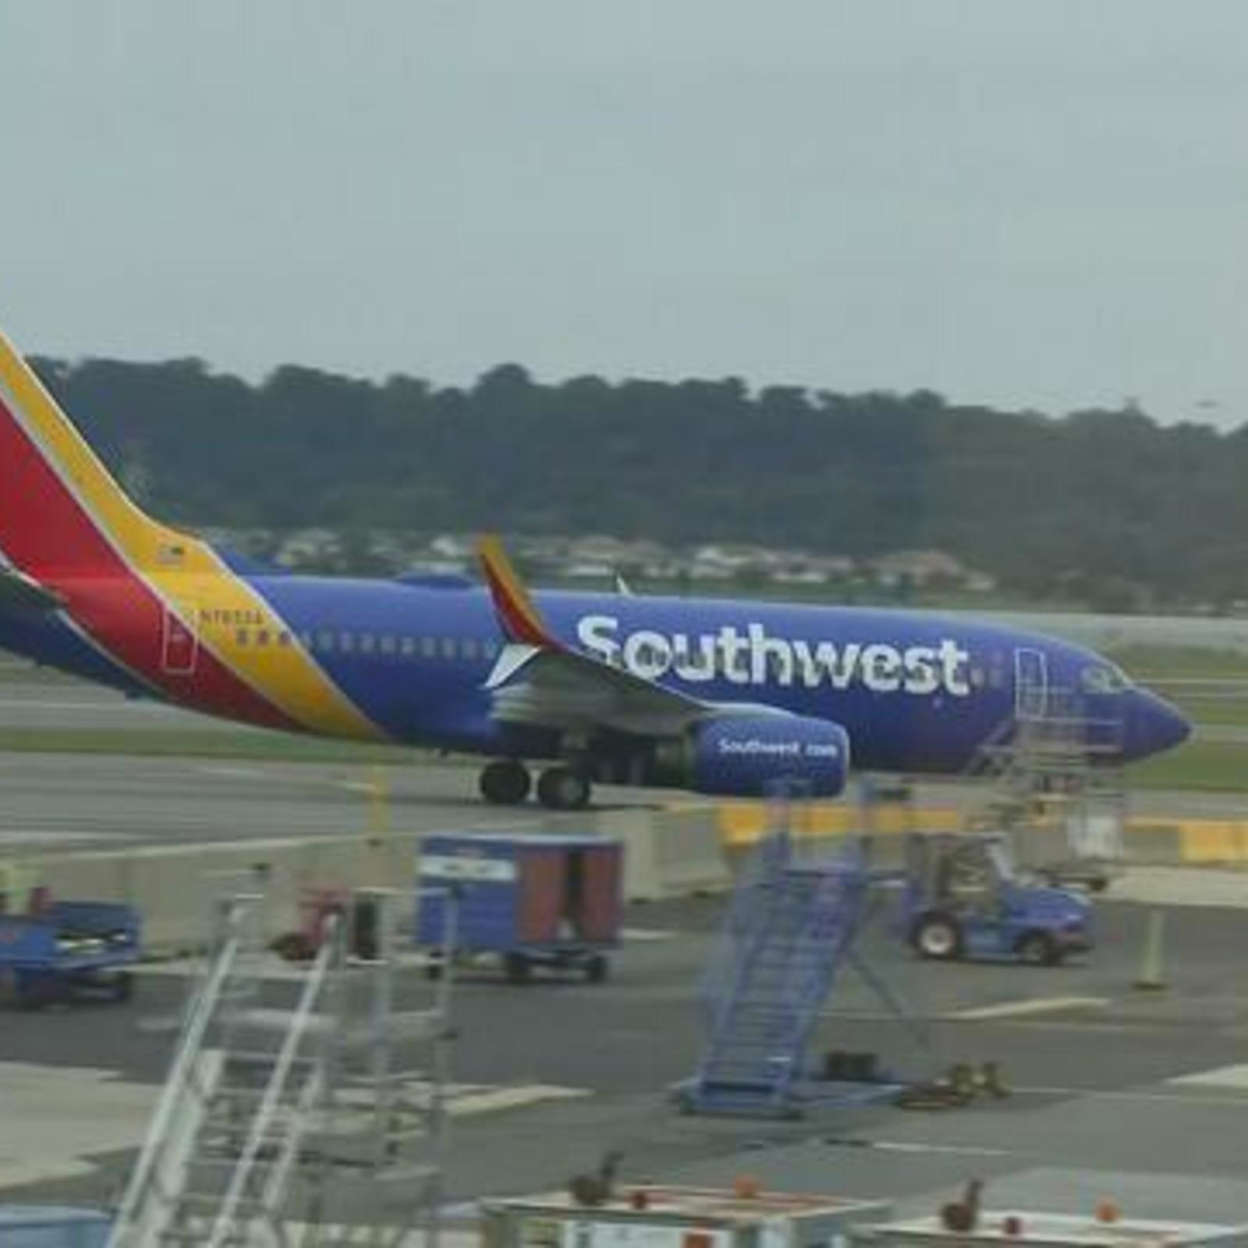 Southwest pilots' union president blames airline for cancellations